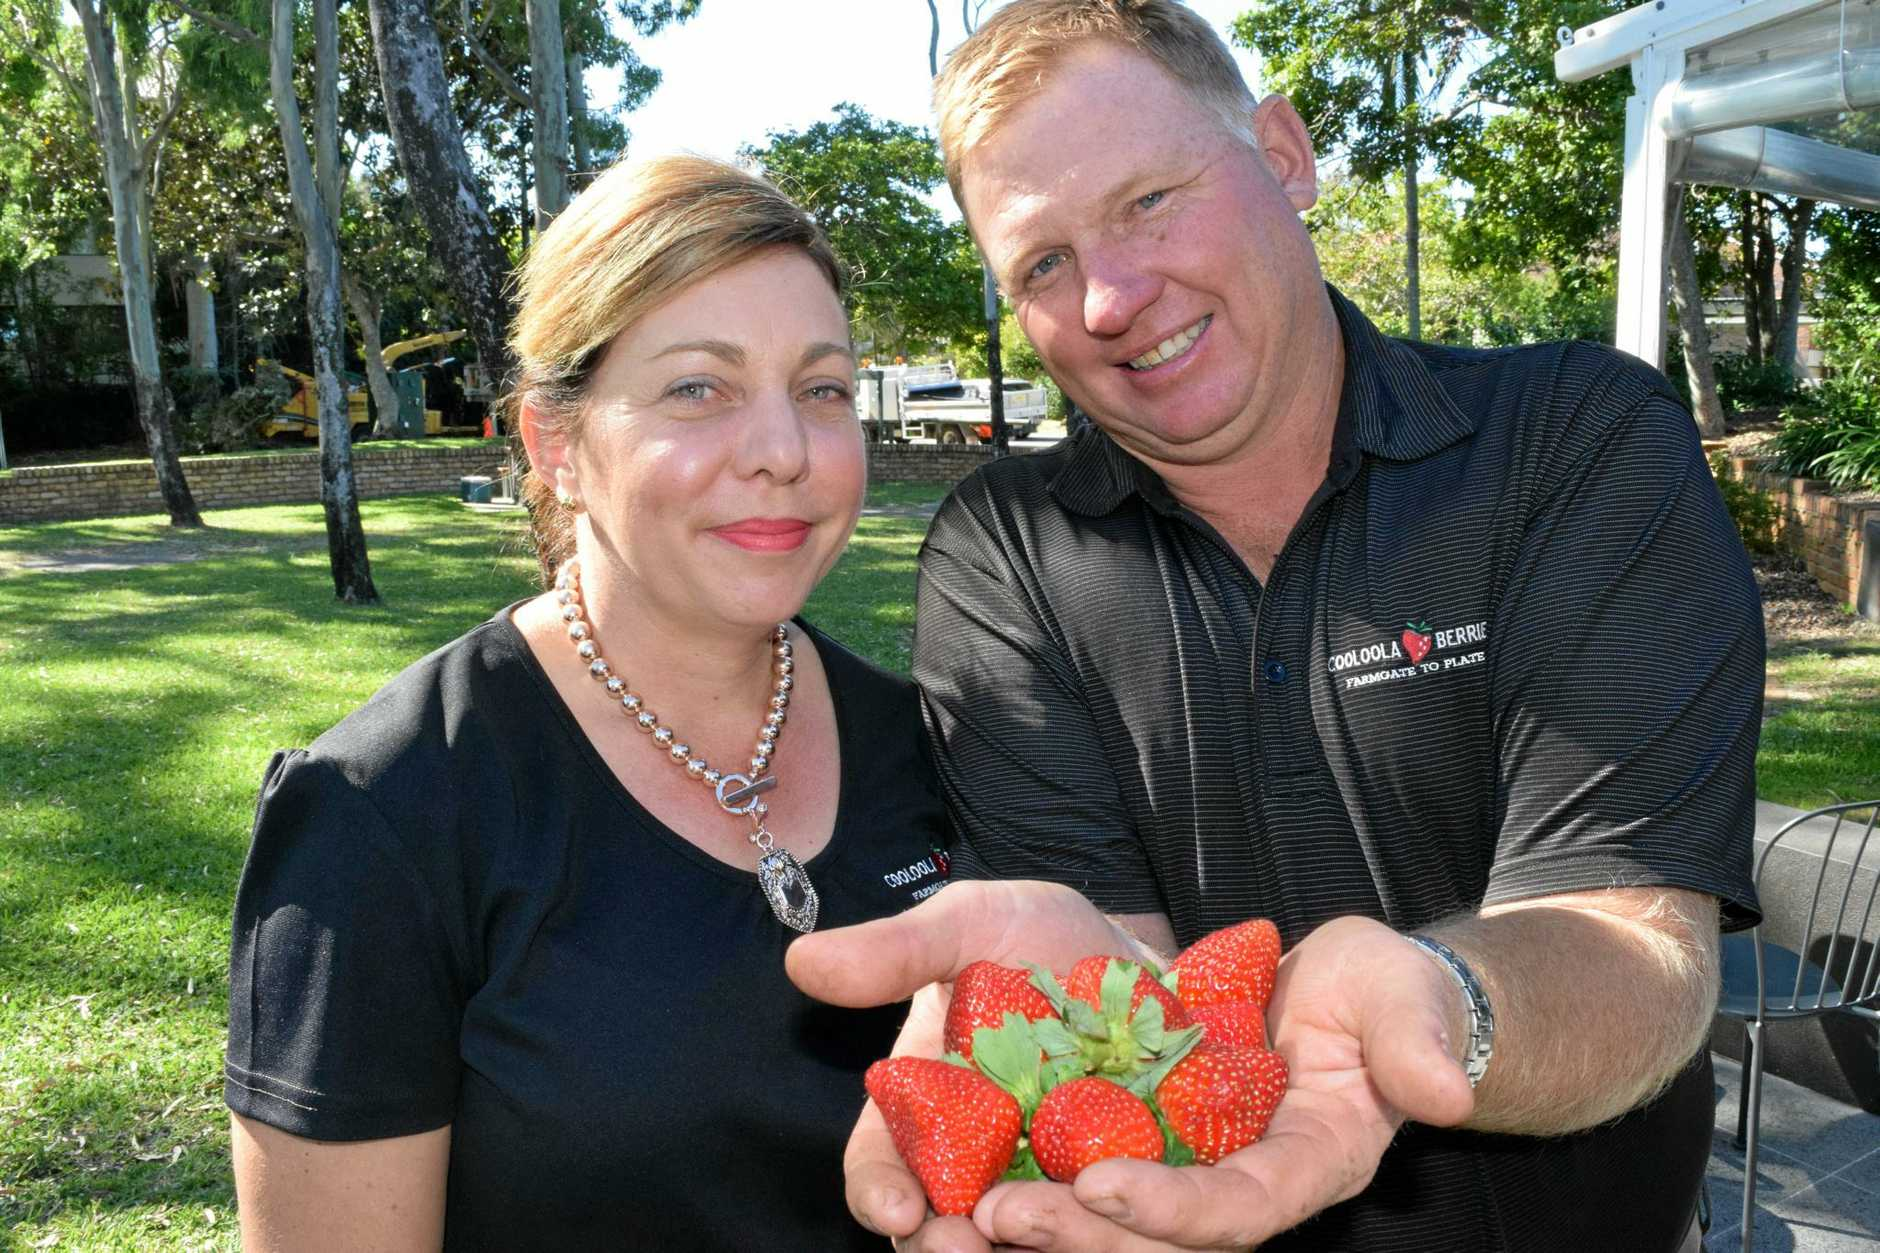 HAND PICKED: Kim and Jason Lewis from Cooloola Berries promote buying and selling local.